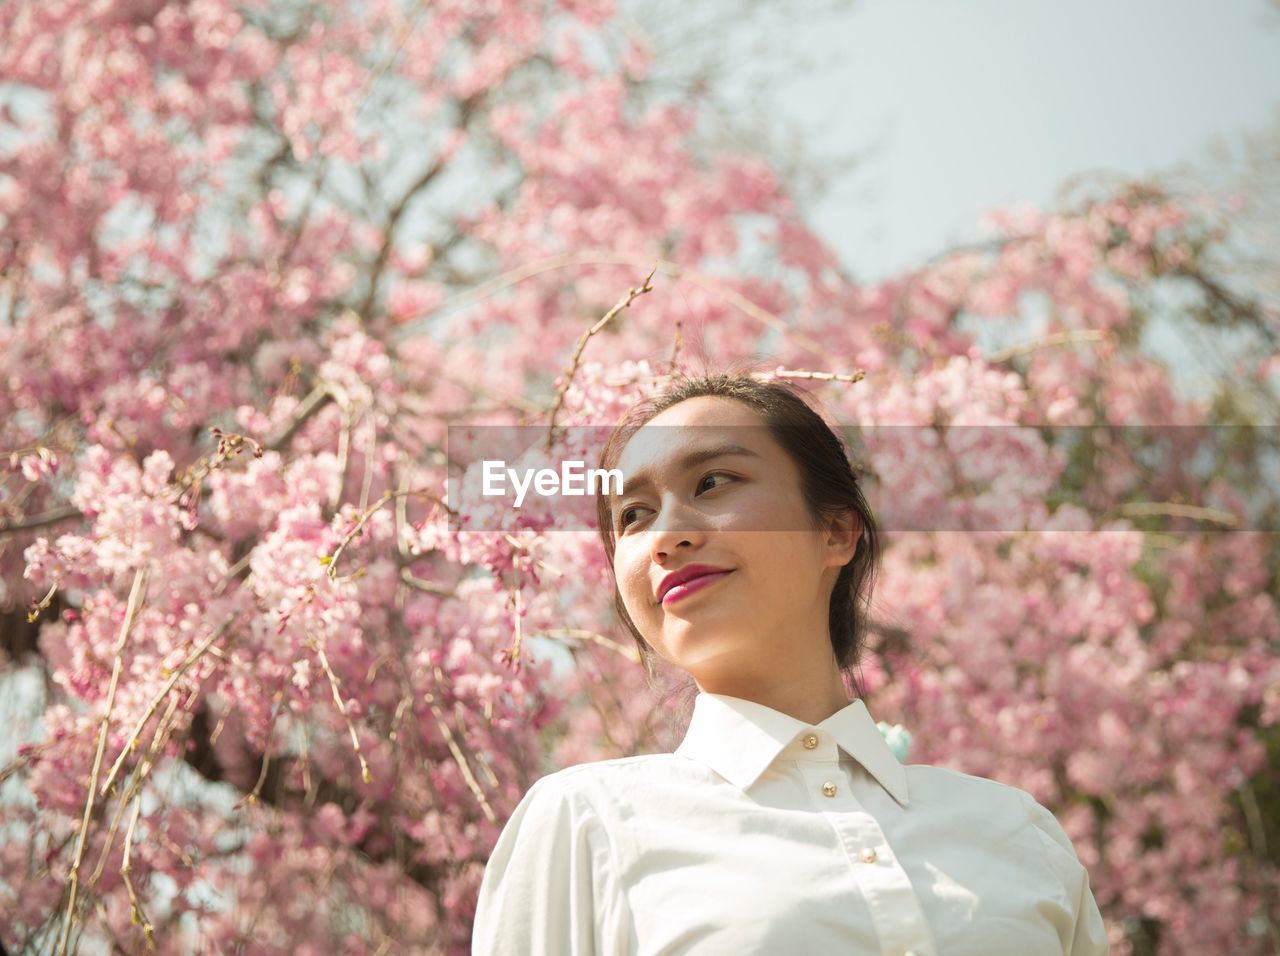 Portrait Of Young Woman In Springtime